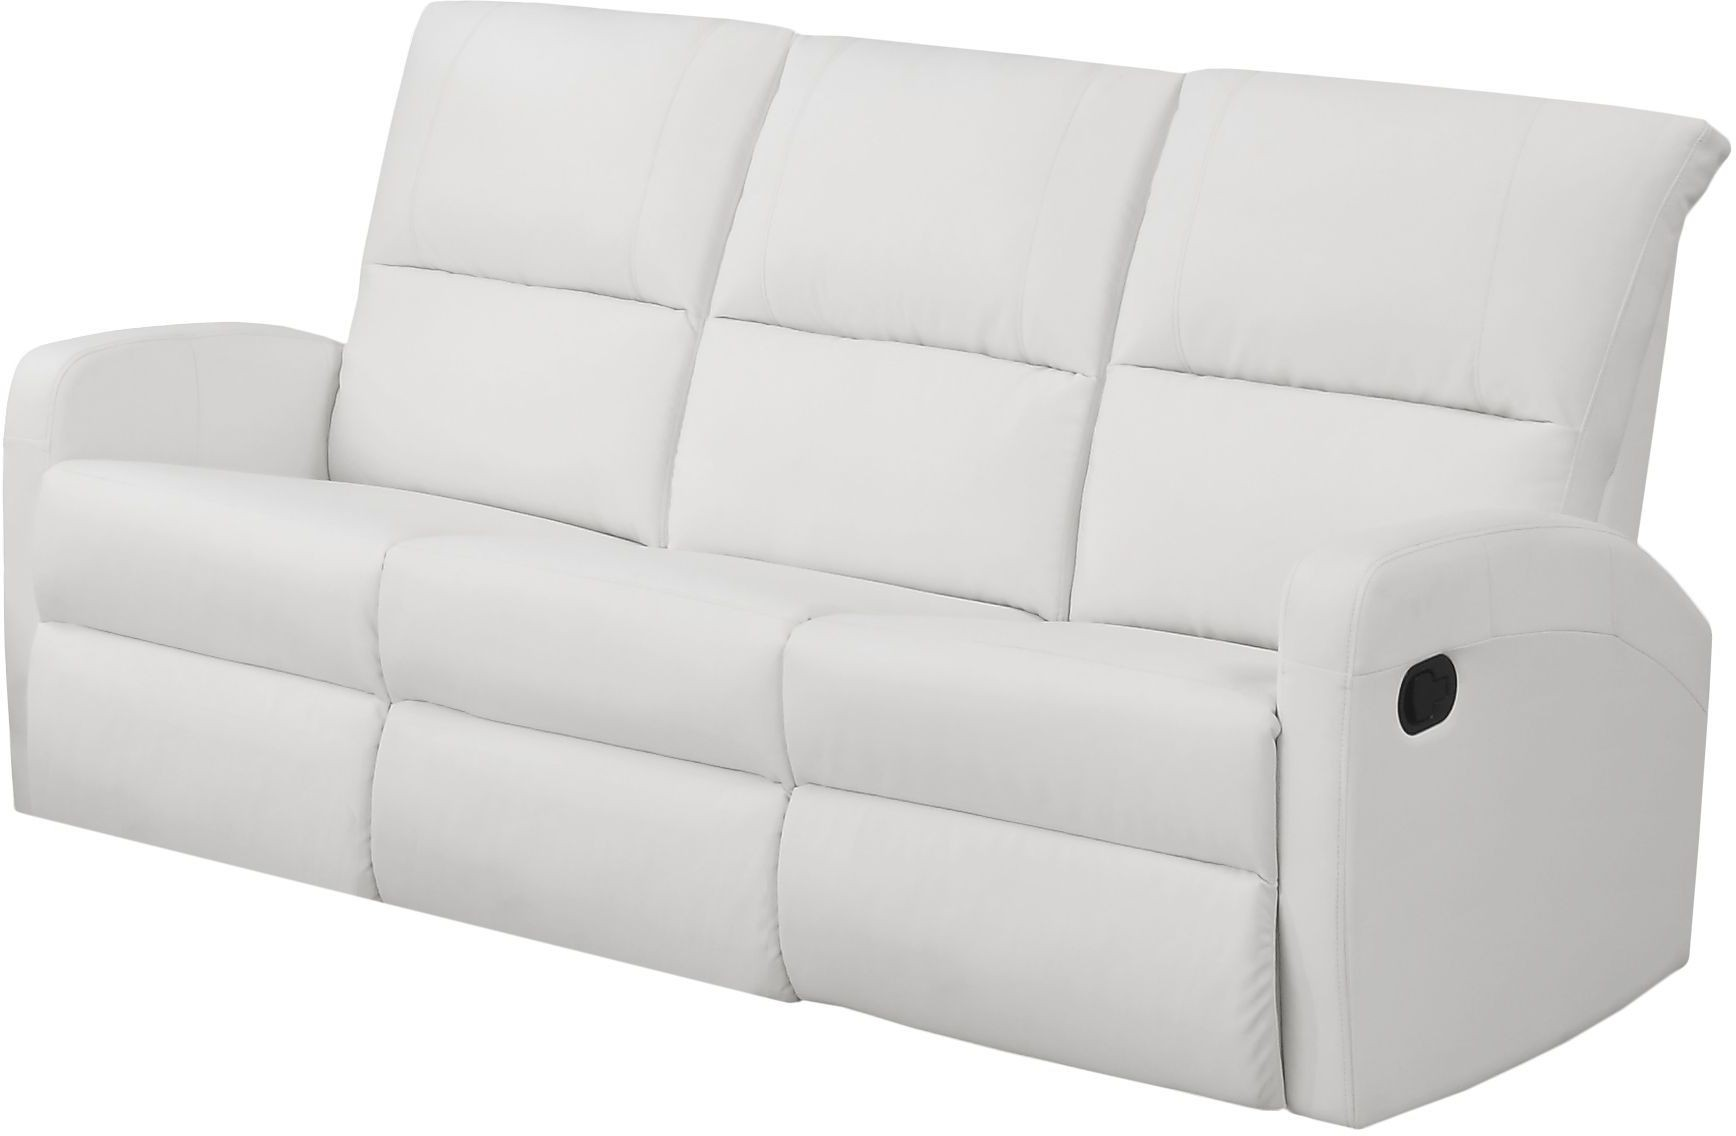 84wh 3 White Bonded Leather Reclining Sofa From Monarch